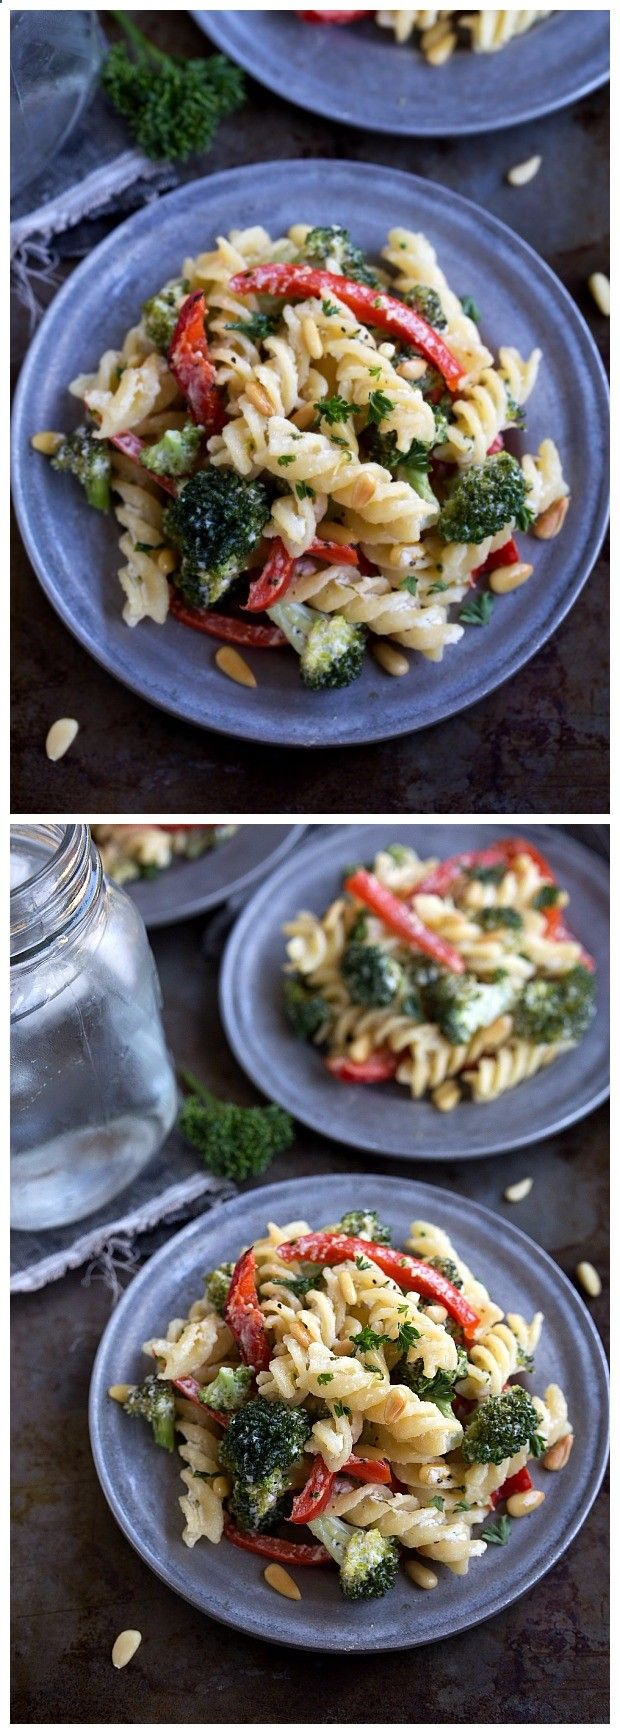 Goat Cheese Pasta, Broccoli, and Pine Nuts